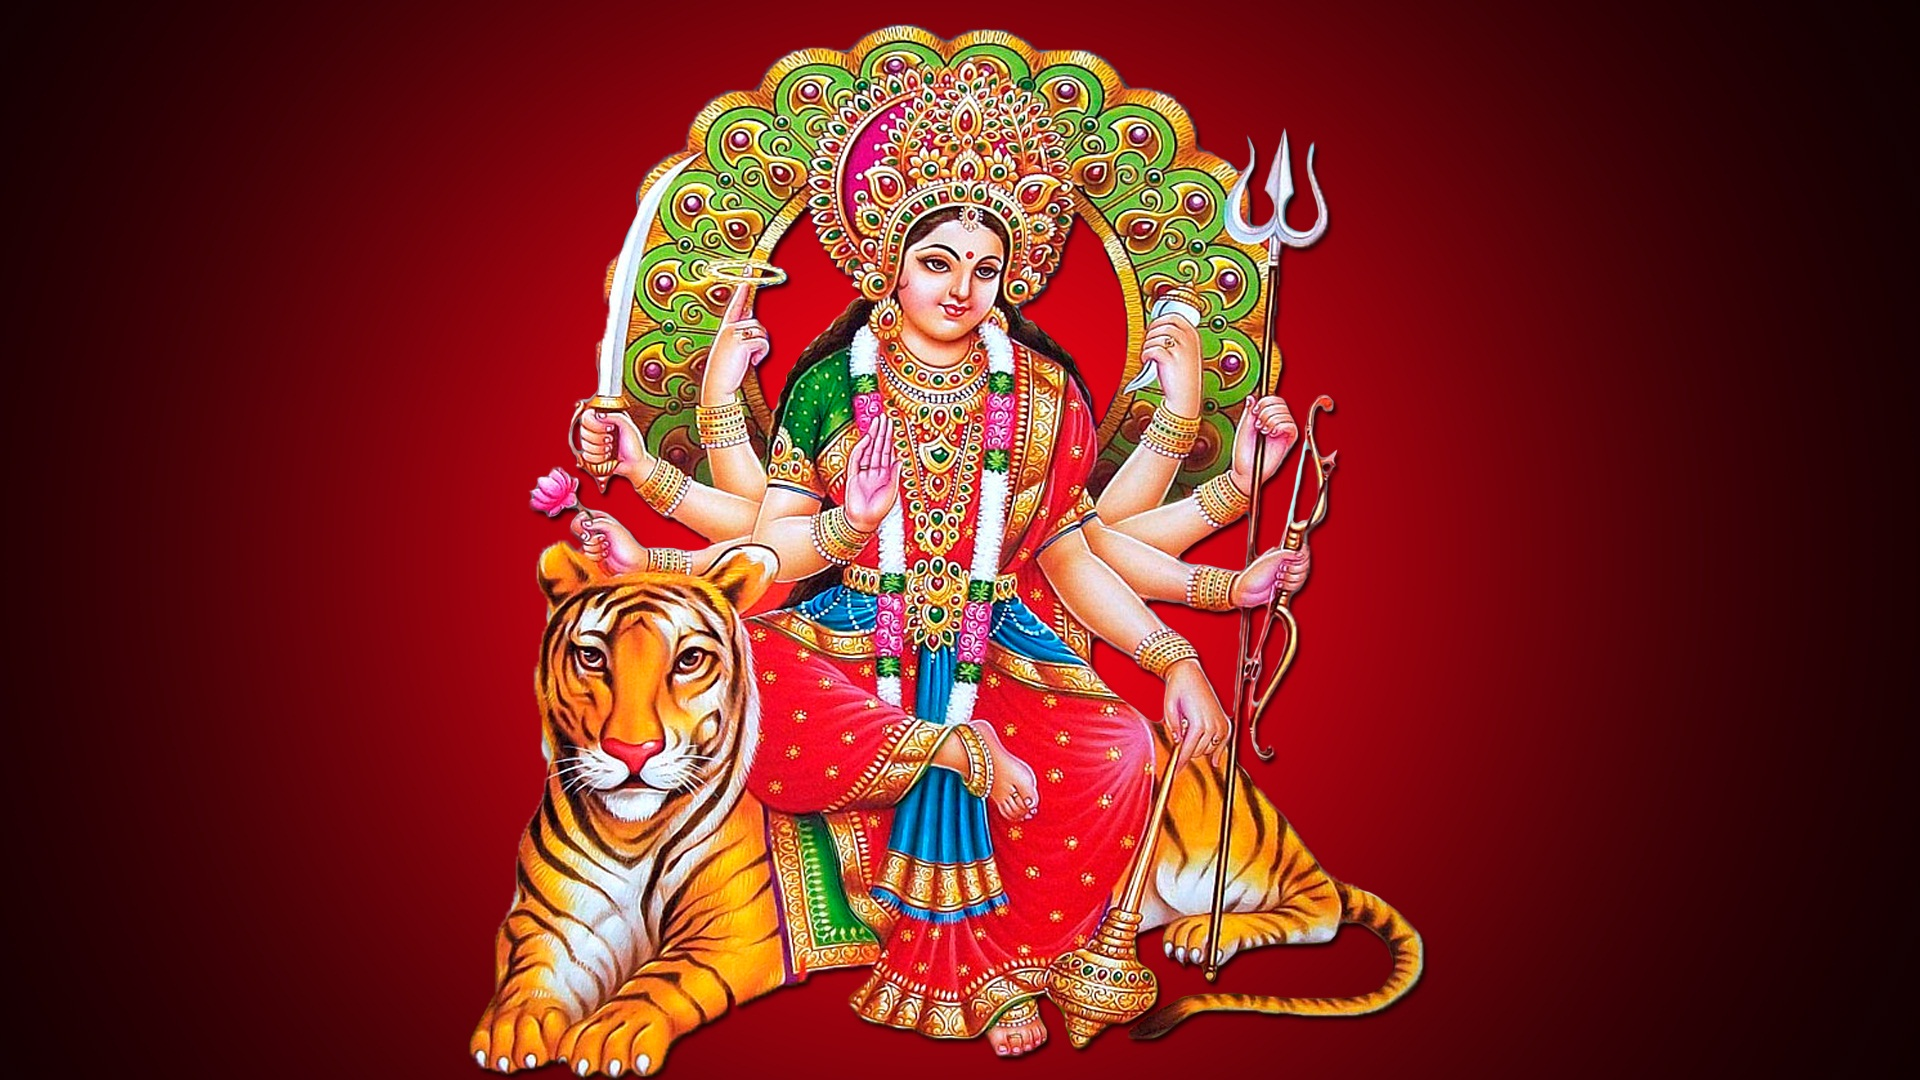 Durga Puja Wallpaper Group